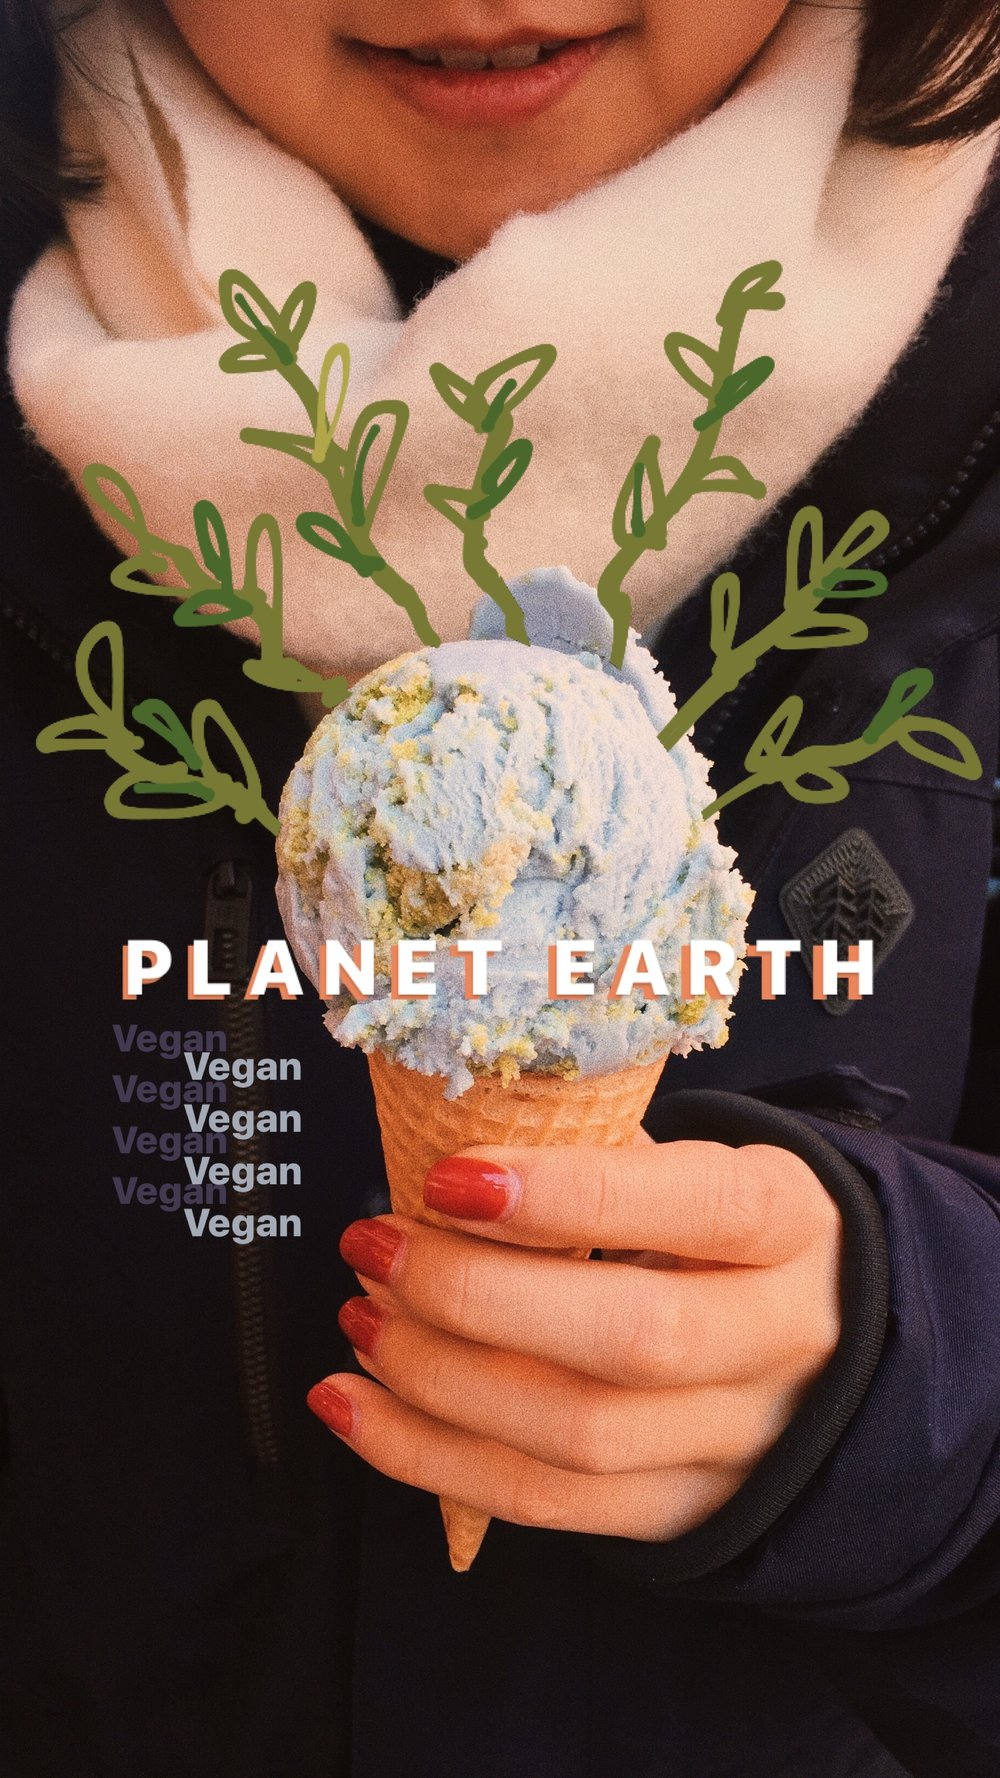 vegan ice cream, planet earth, van leeuwen